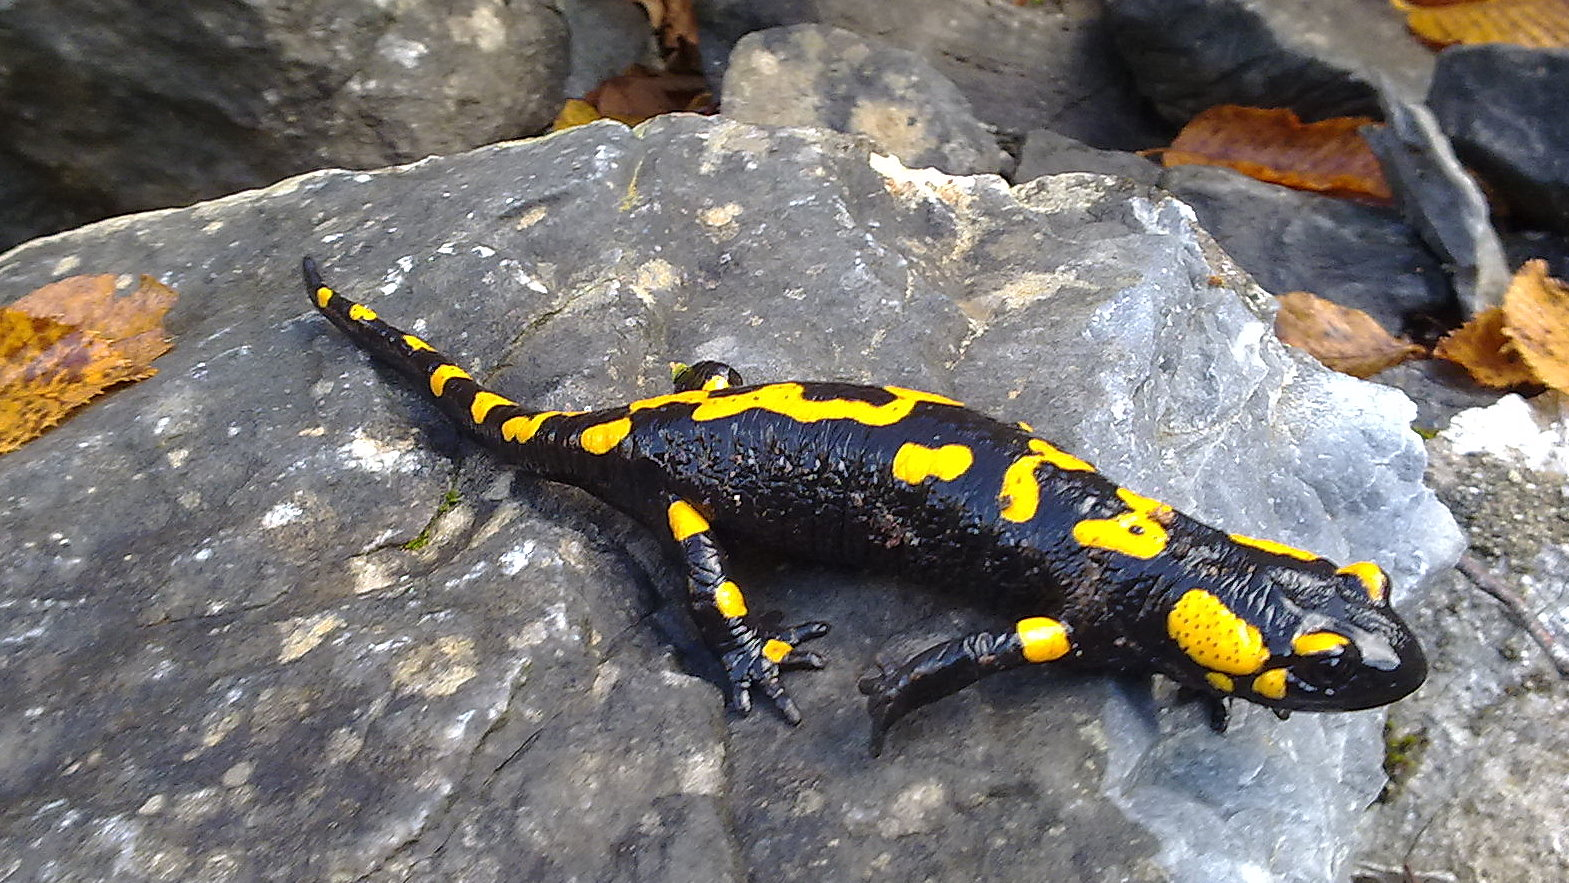 Salamanders are one of the three main groups of amphibians